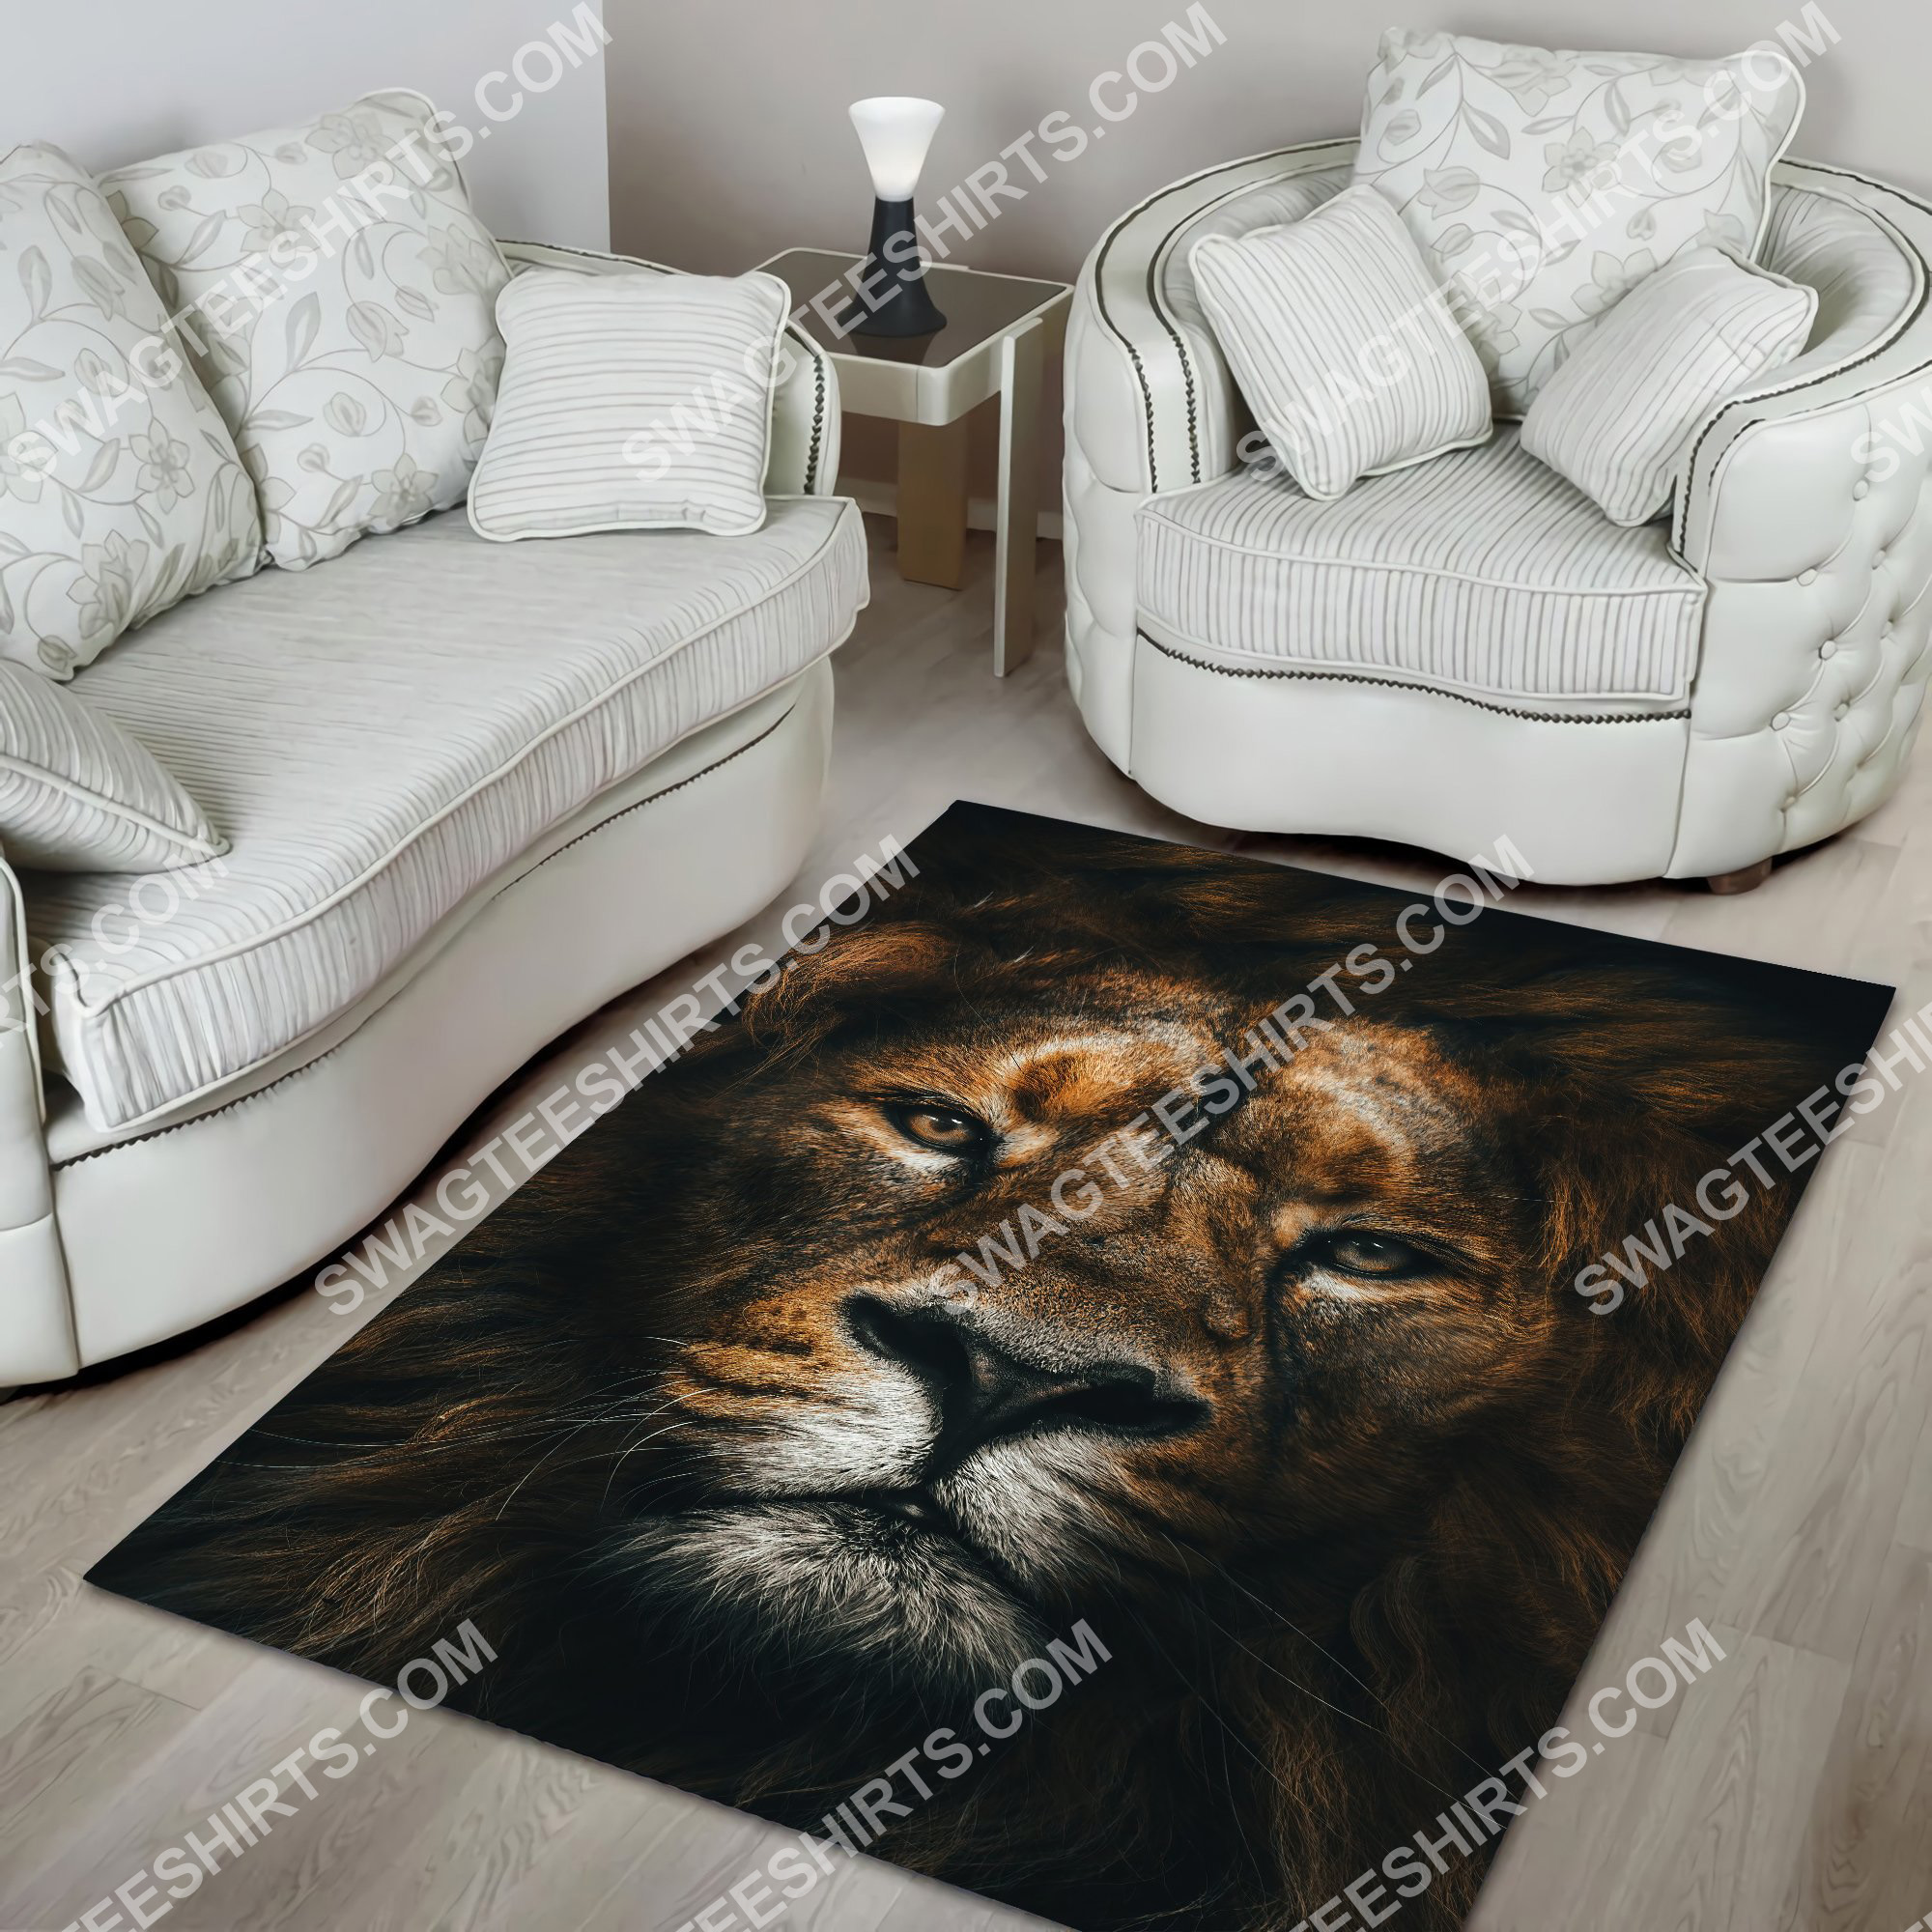 the lion retro all over printed rug 5(1)